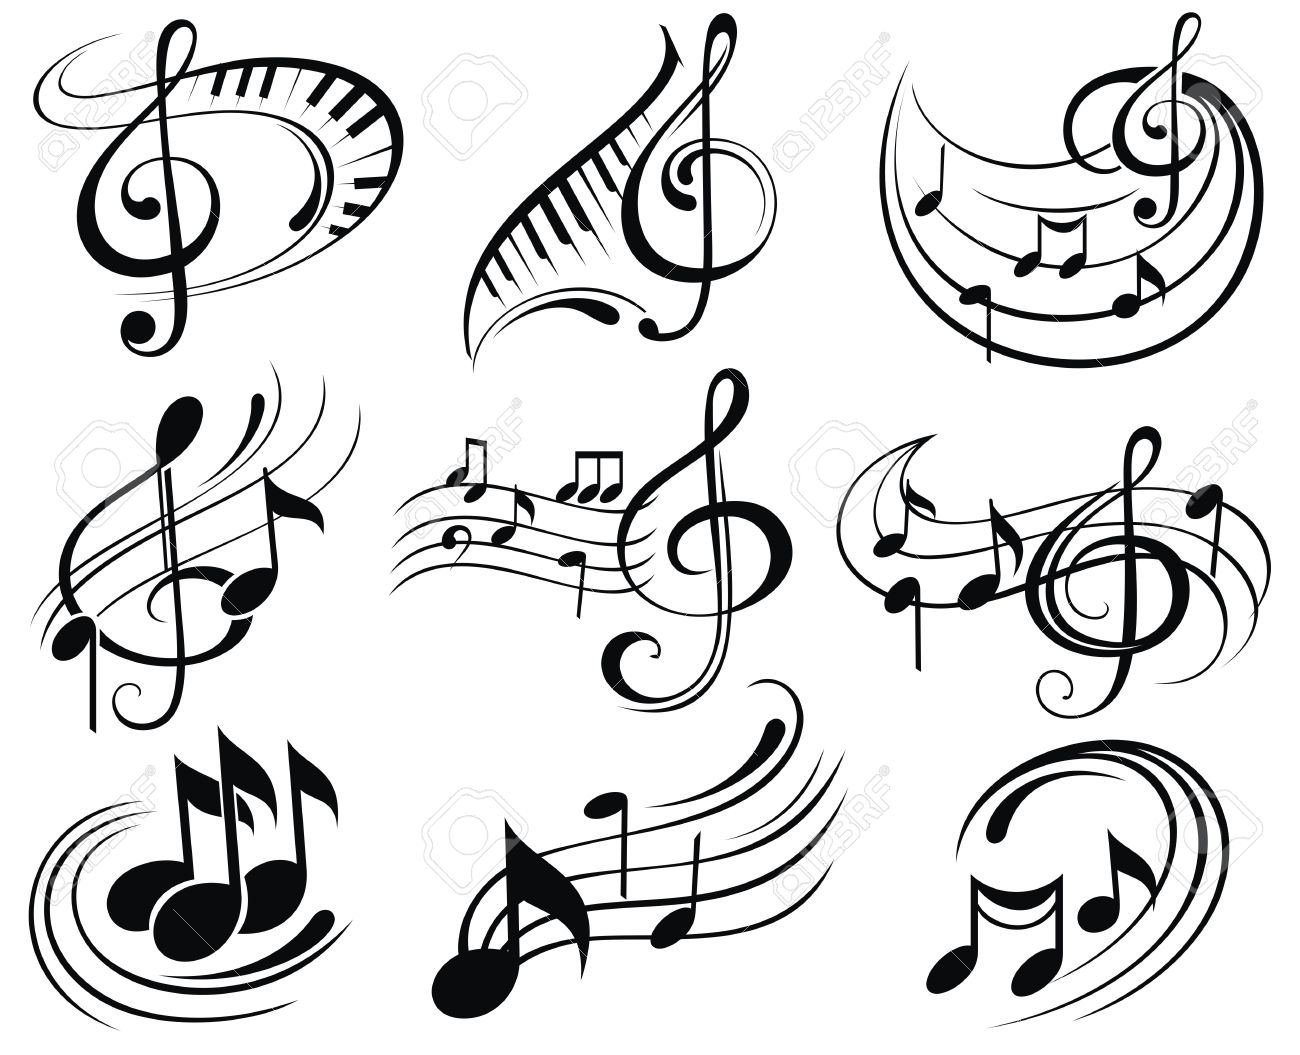 music notes royalty free cliparts vectors and stock illustration